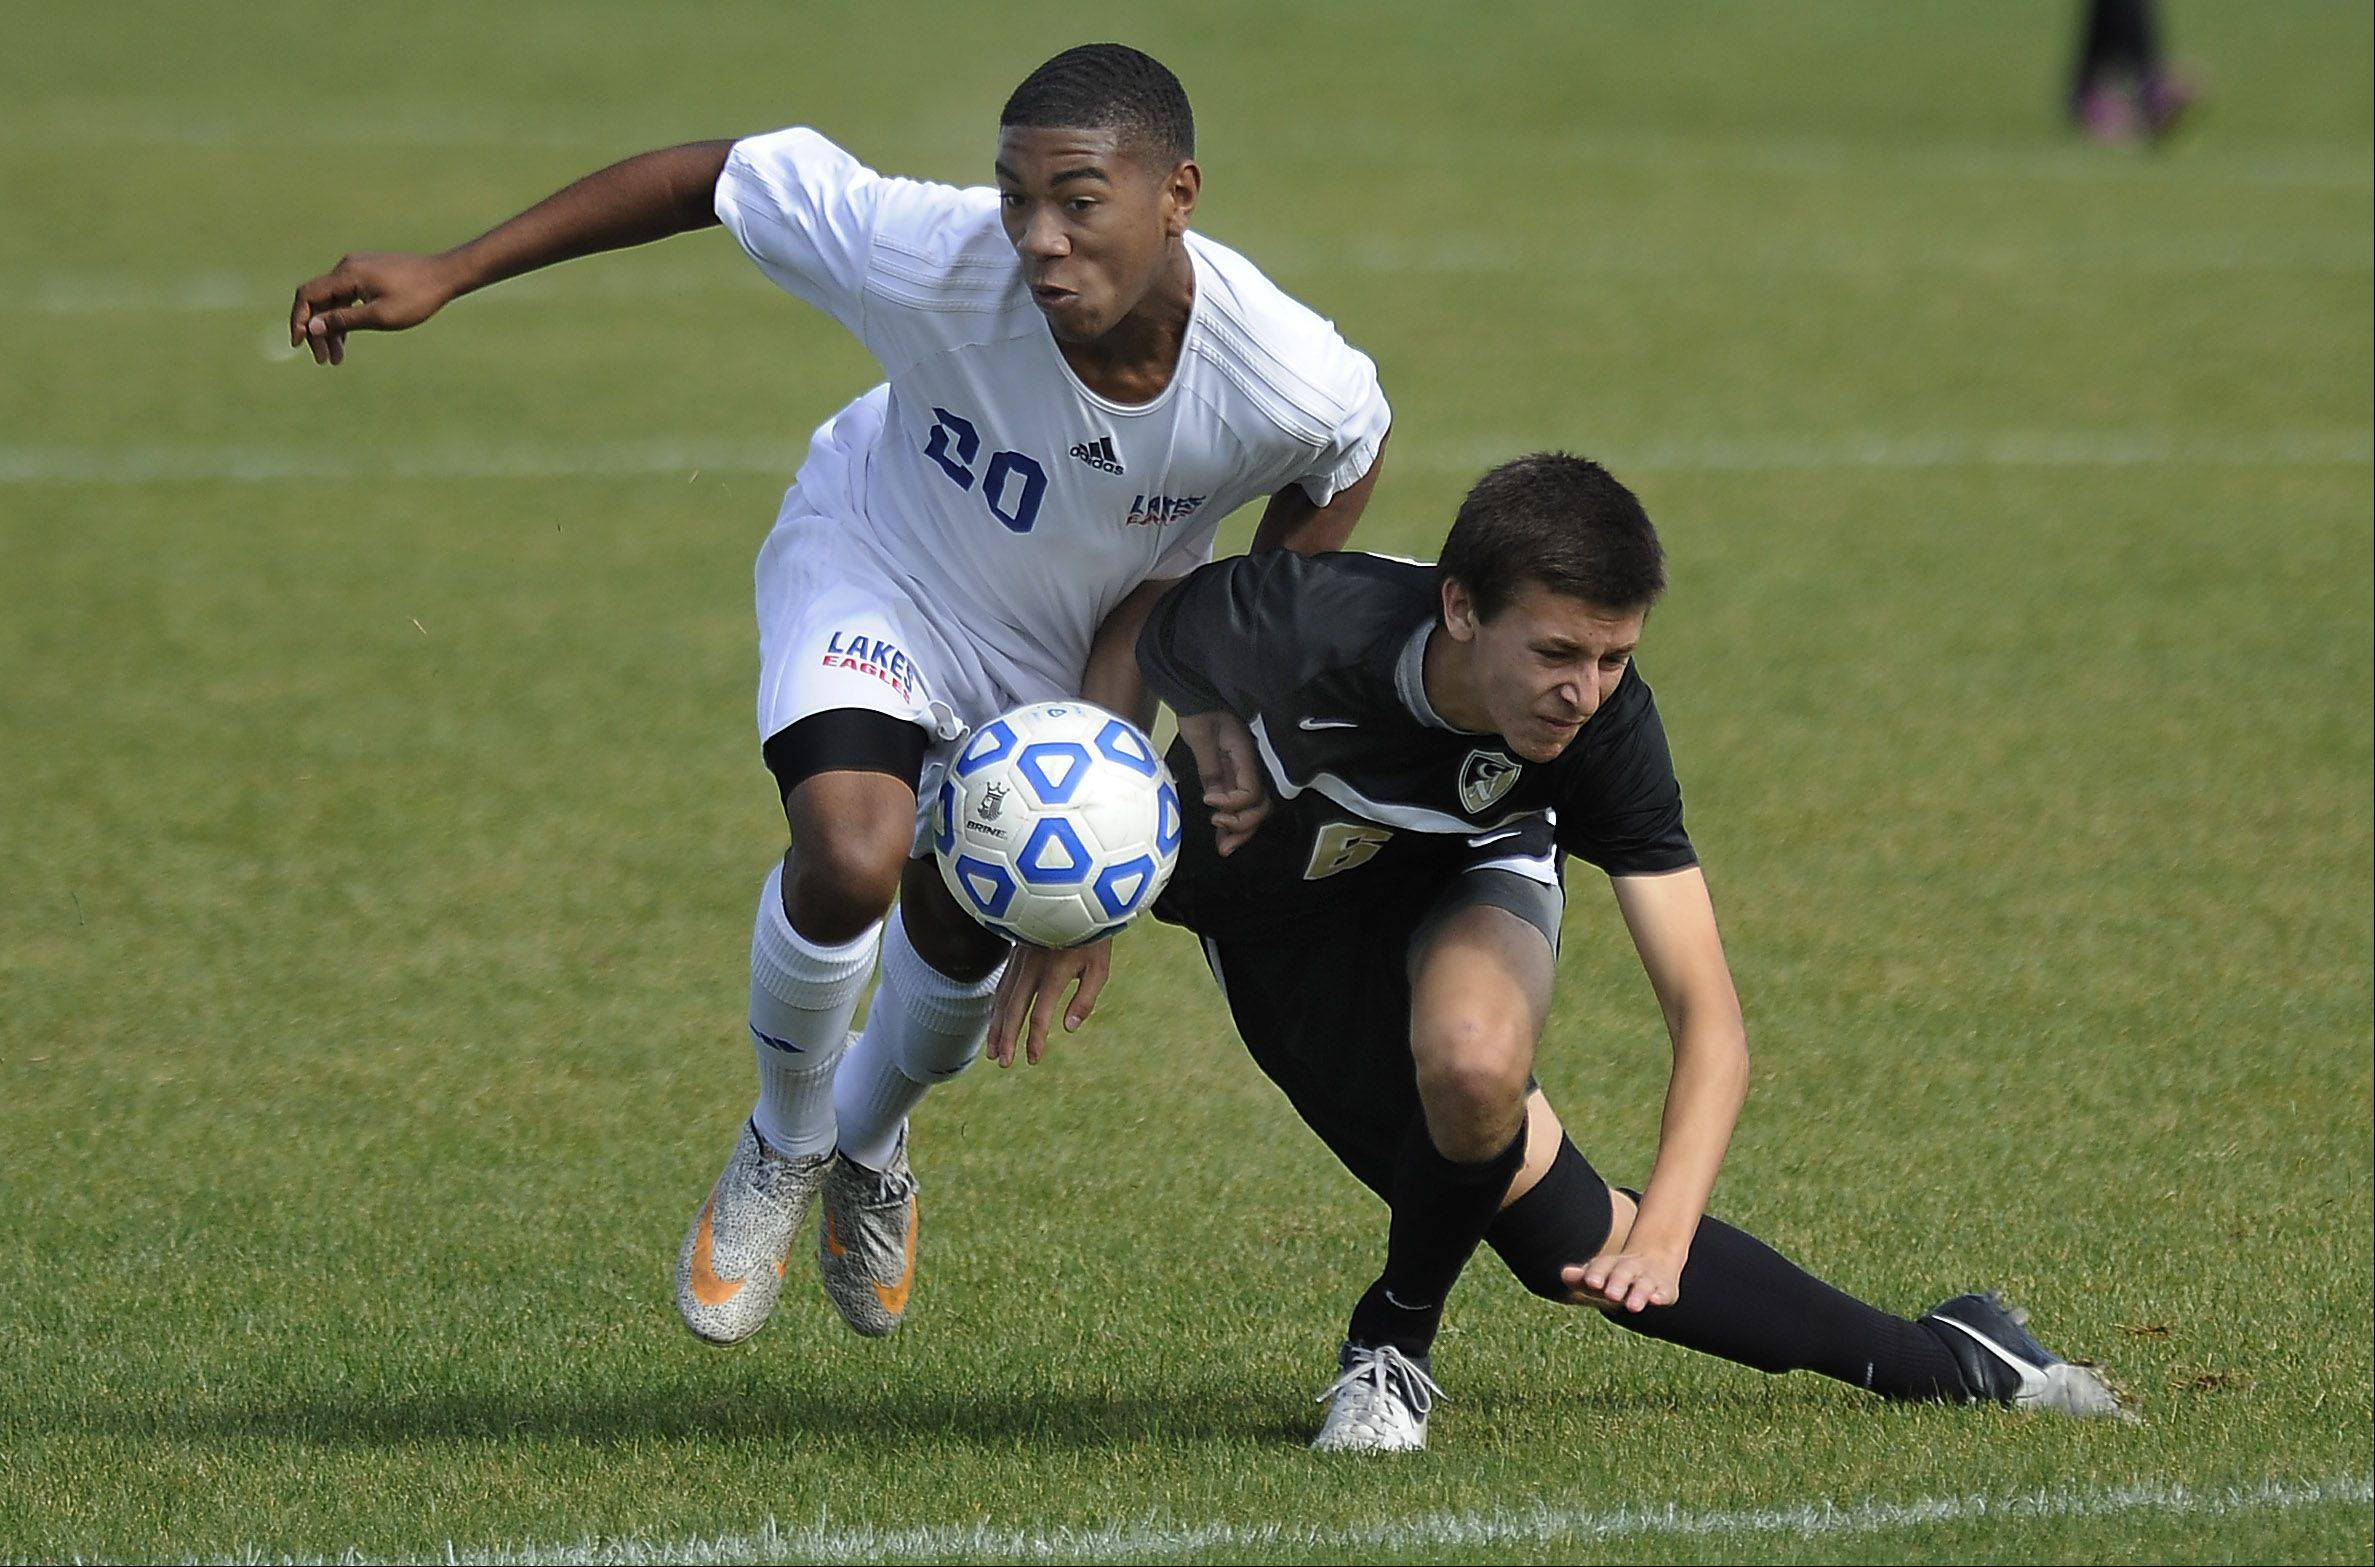 Lakes' Foster Dore and Graylake North's Andreas Thedorf battle for control during Saturday's soccer game in Lake Villa.